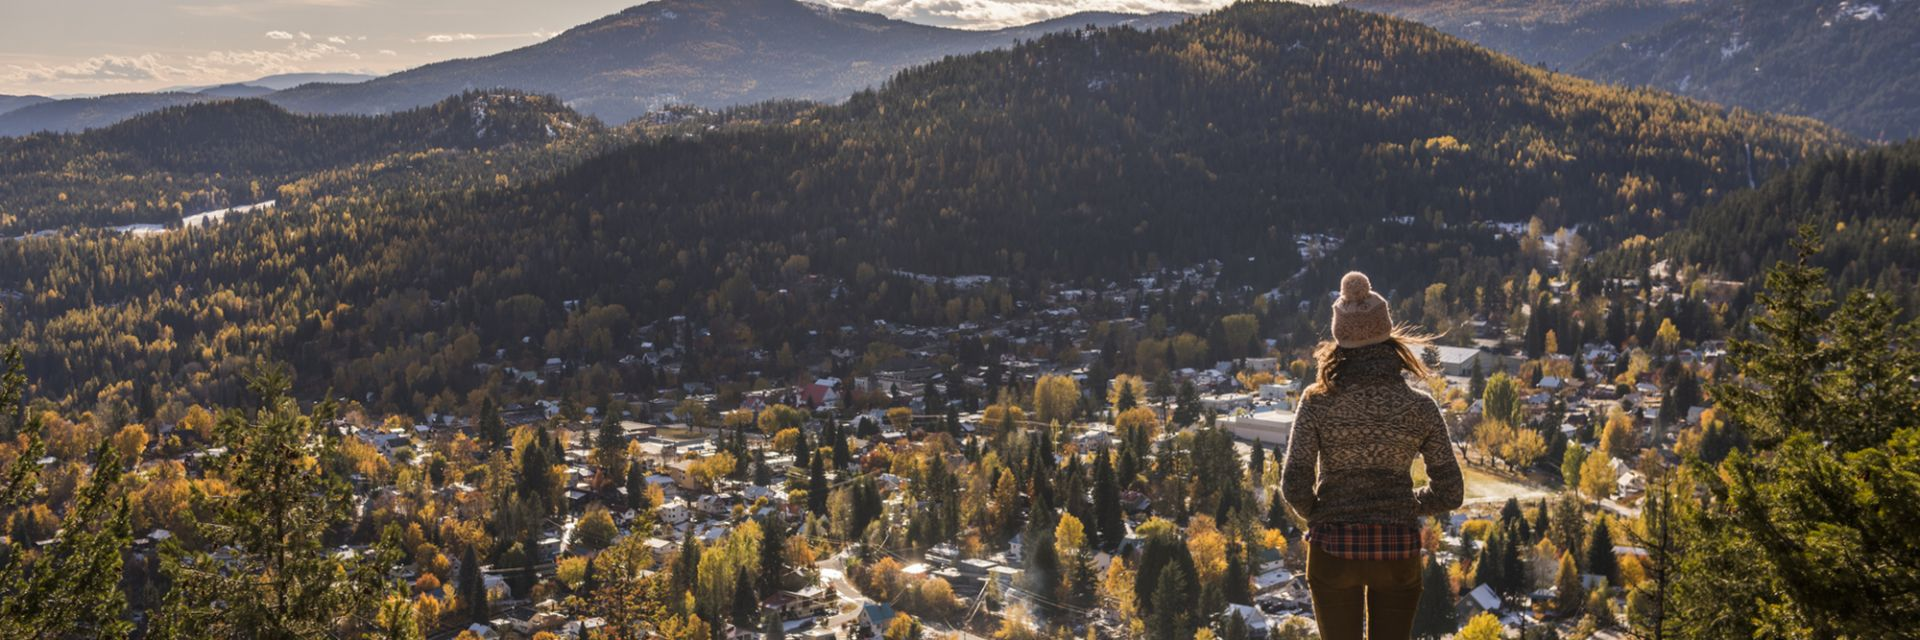 A view of Rossland, BC from the Kootenay Columbia viewpoint